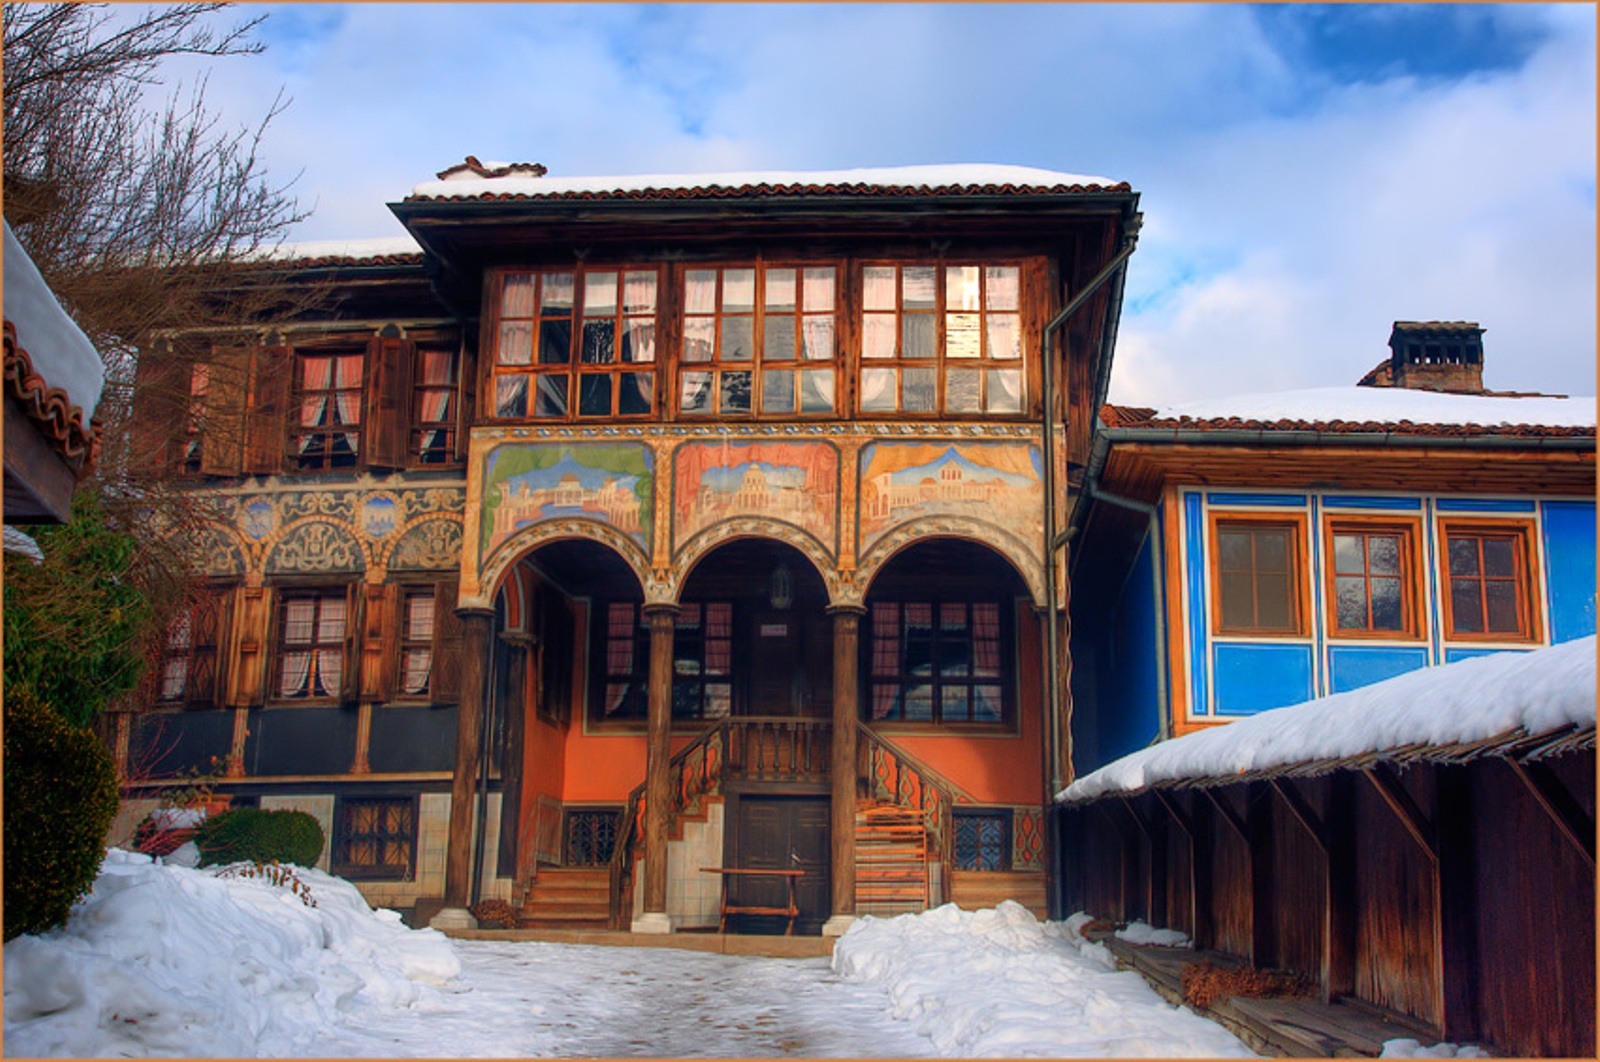 Koprivshtitsa - Attraction Oslekova House - Picture 2